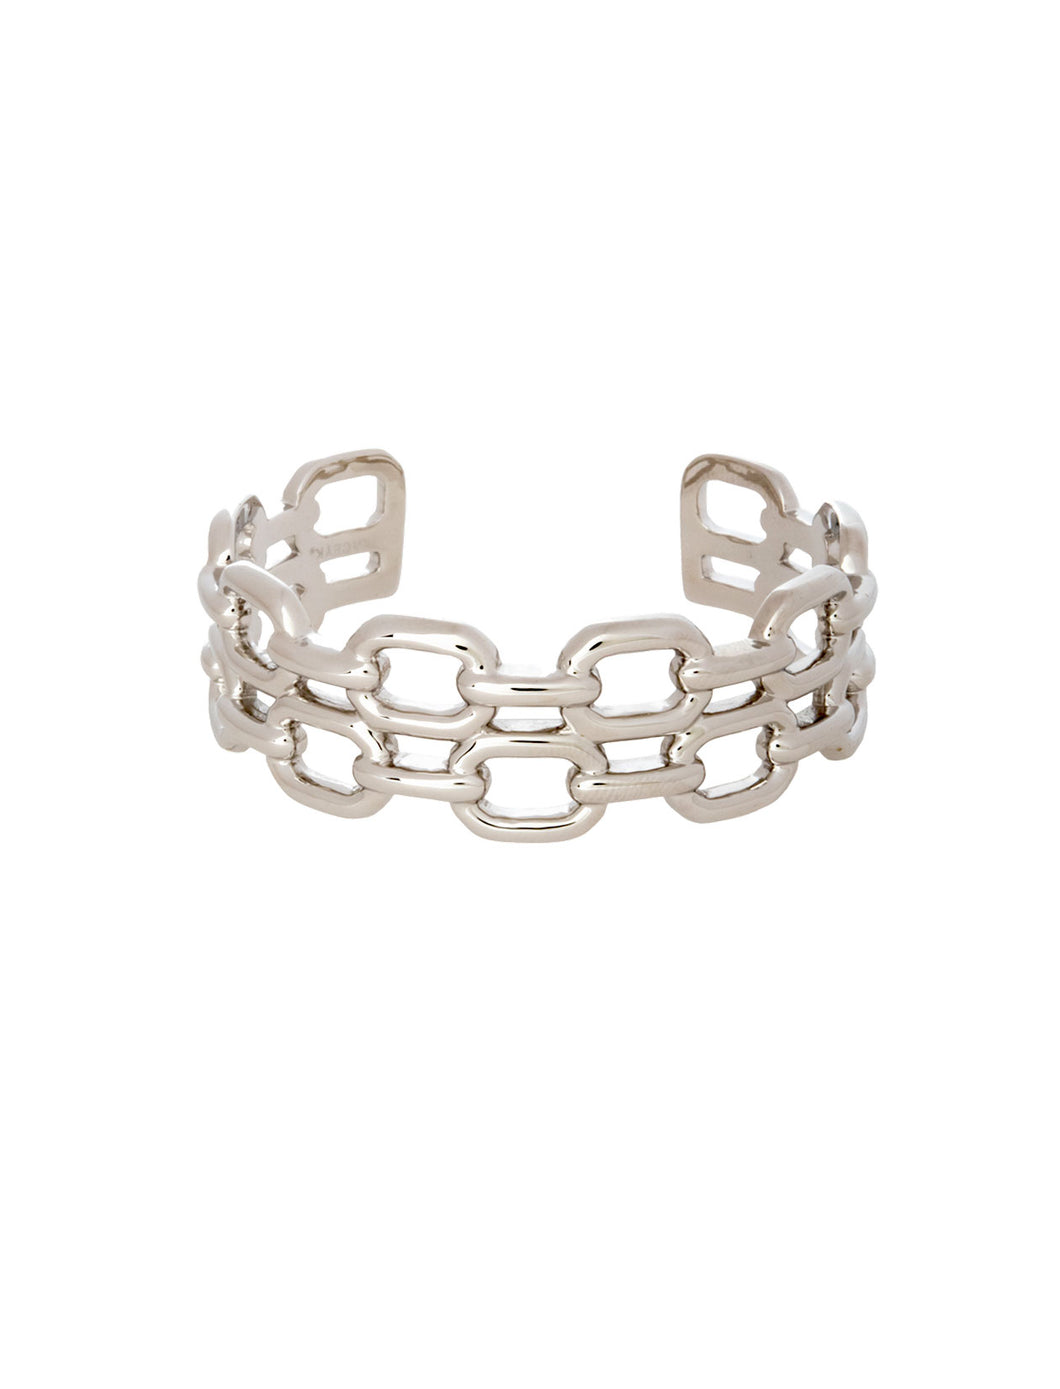 Double Chain Link Cuff.